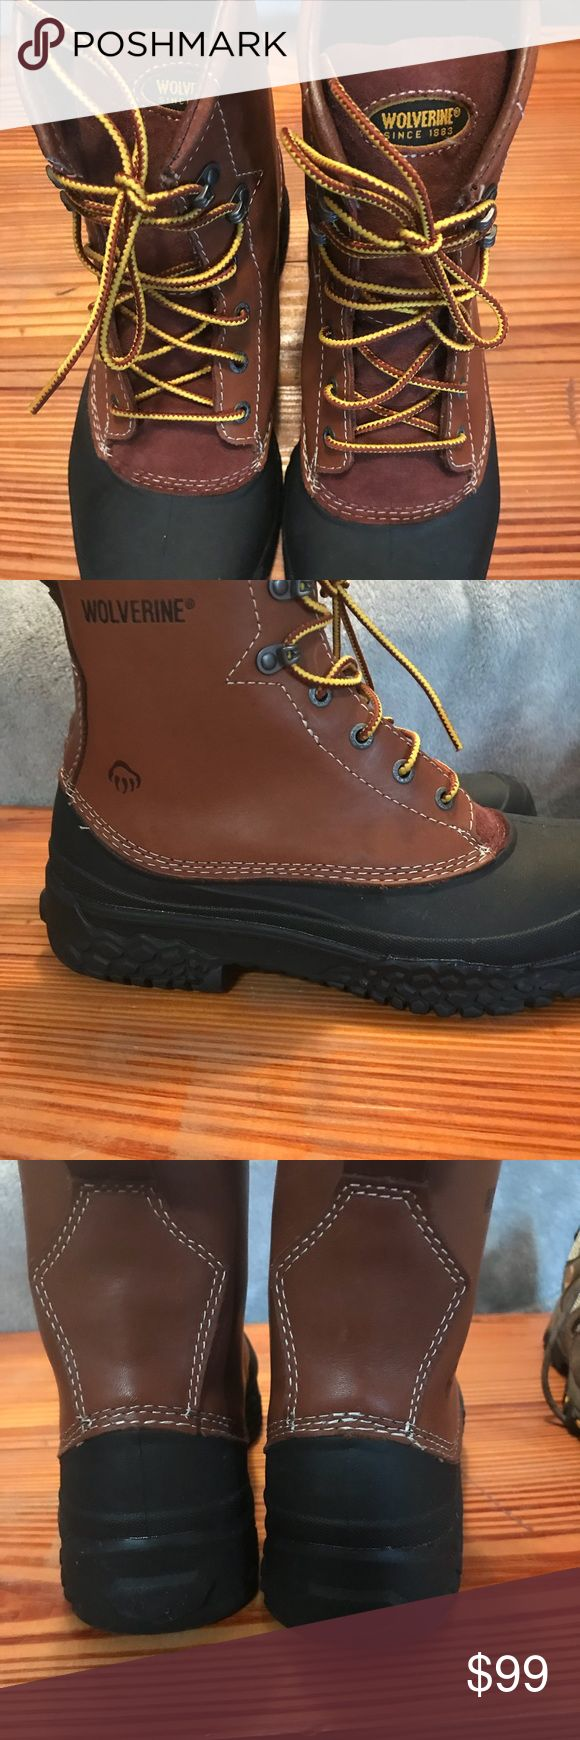 """Men's wolverine steel toed waterproof boots Men's Wolverine 6"""" Work Boots Men's size 8.5  Slip-resistant rubber outsole Moisture wicking mesh liner  Removable polyurethane cushioning footbed  Waterproof full-grain leather with SwampMonster shell Steel toe rated ASTM F2413-11 M1/75 C/75 EH New without box Never been worn Wolverine Shoes Boots"""